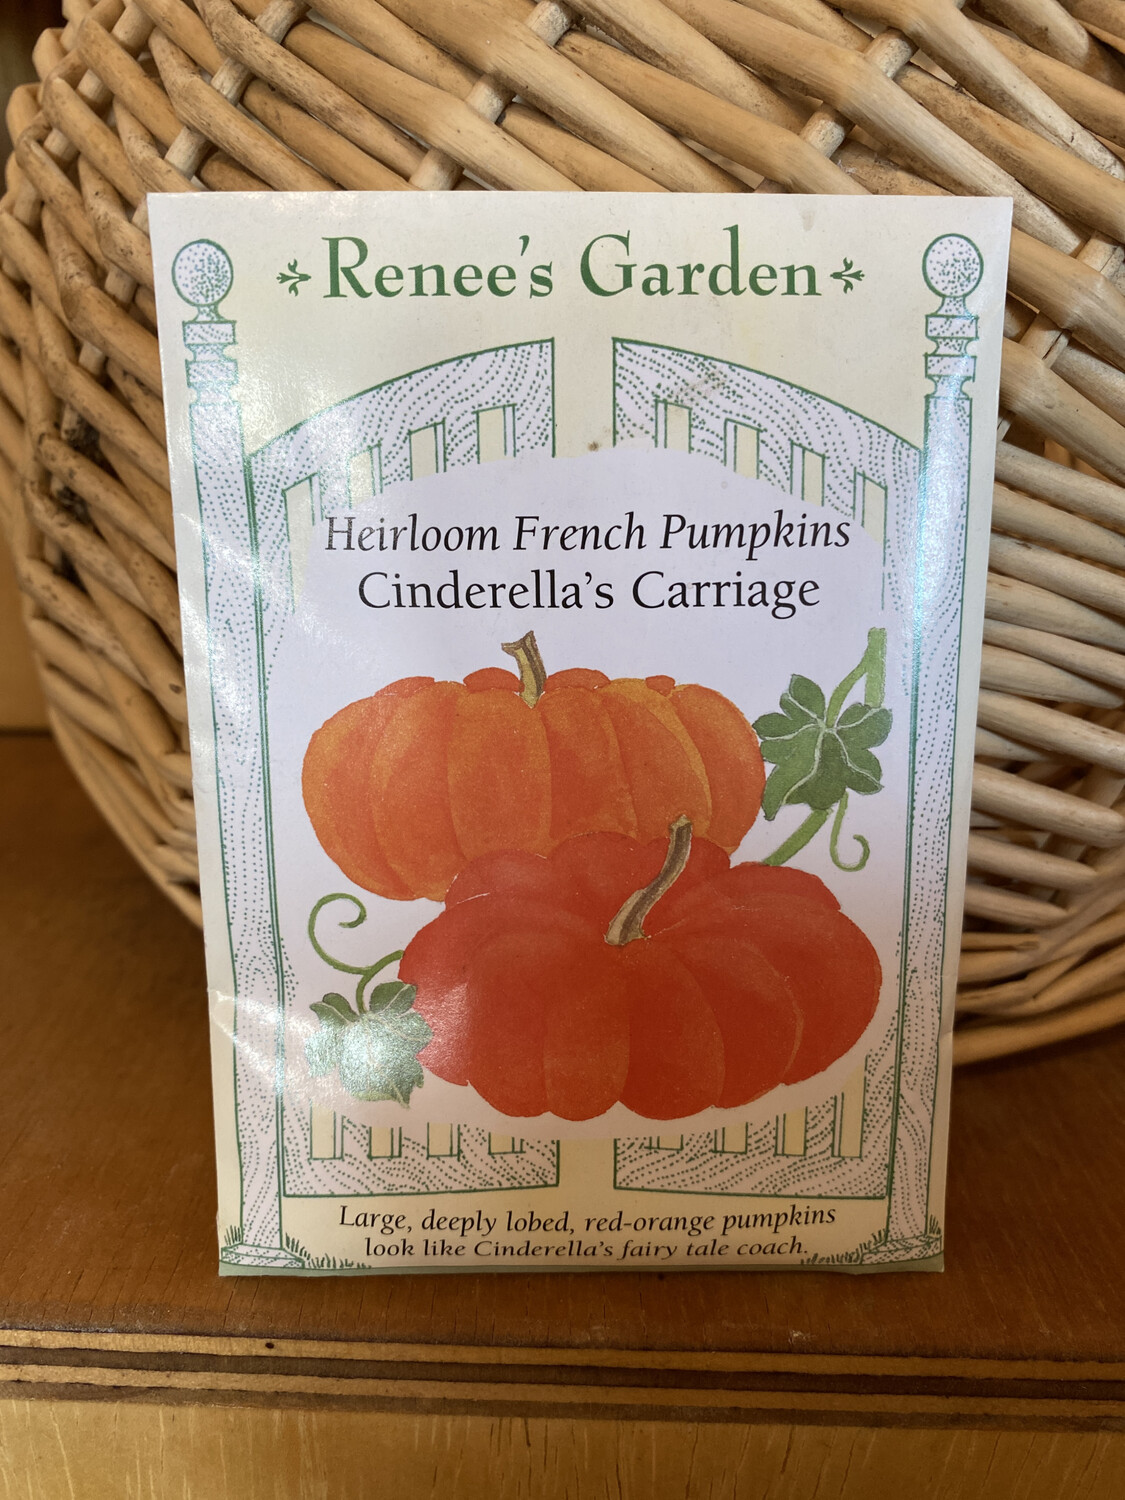 Heirloom French Pumpkins Cinderella's Carriage | Renee's Garden Seed Pack | Past Year's Seeds | Reduced Price